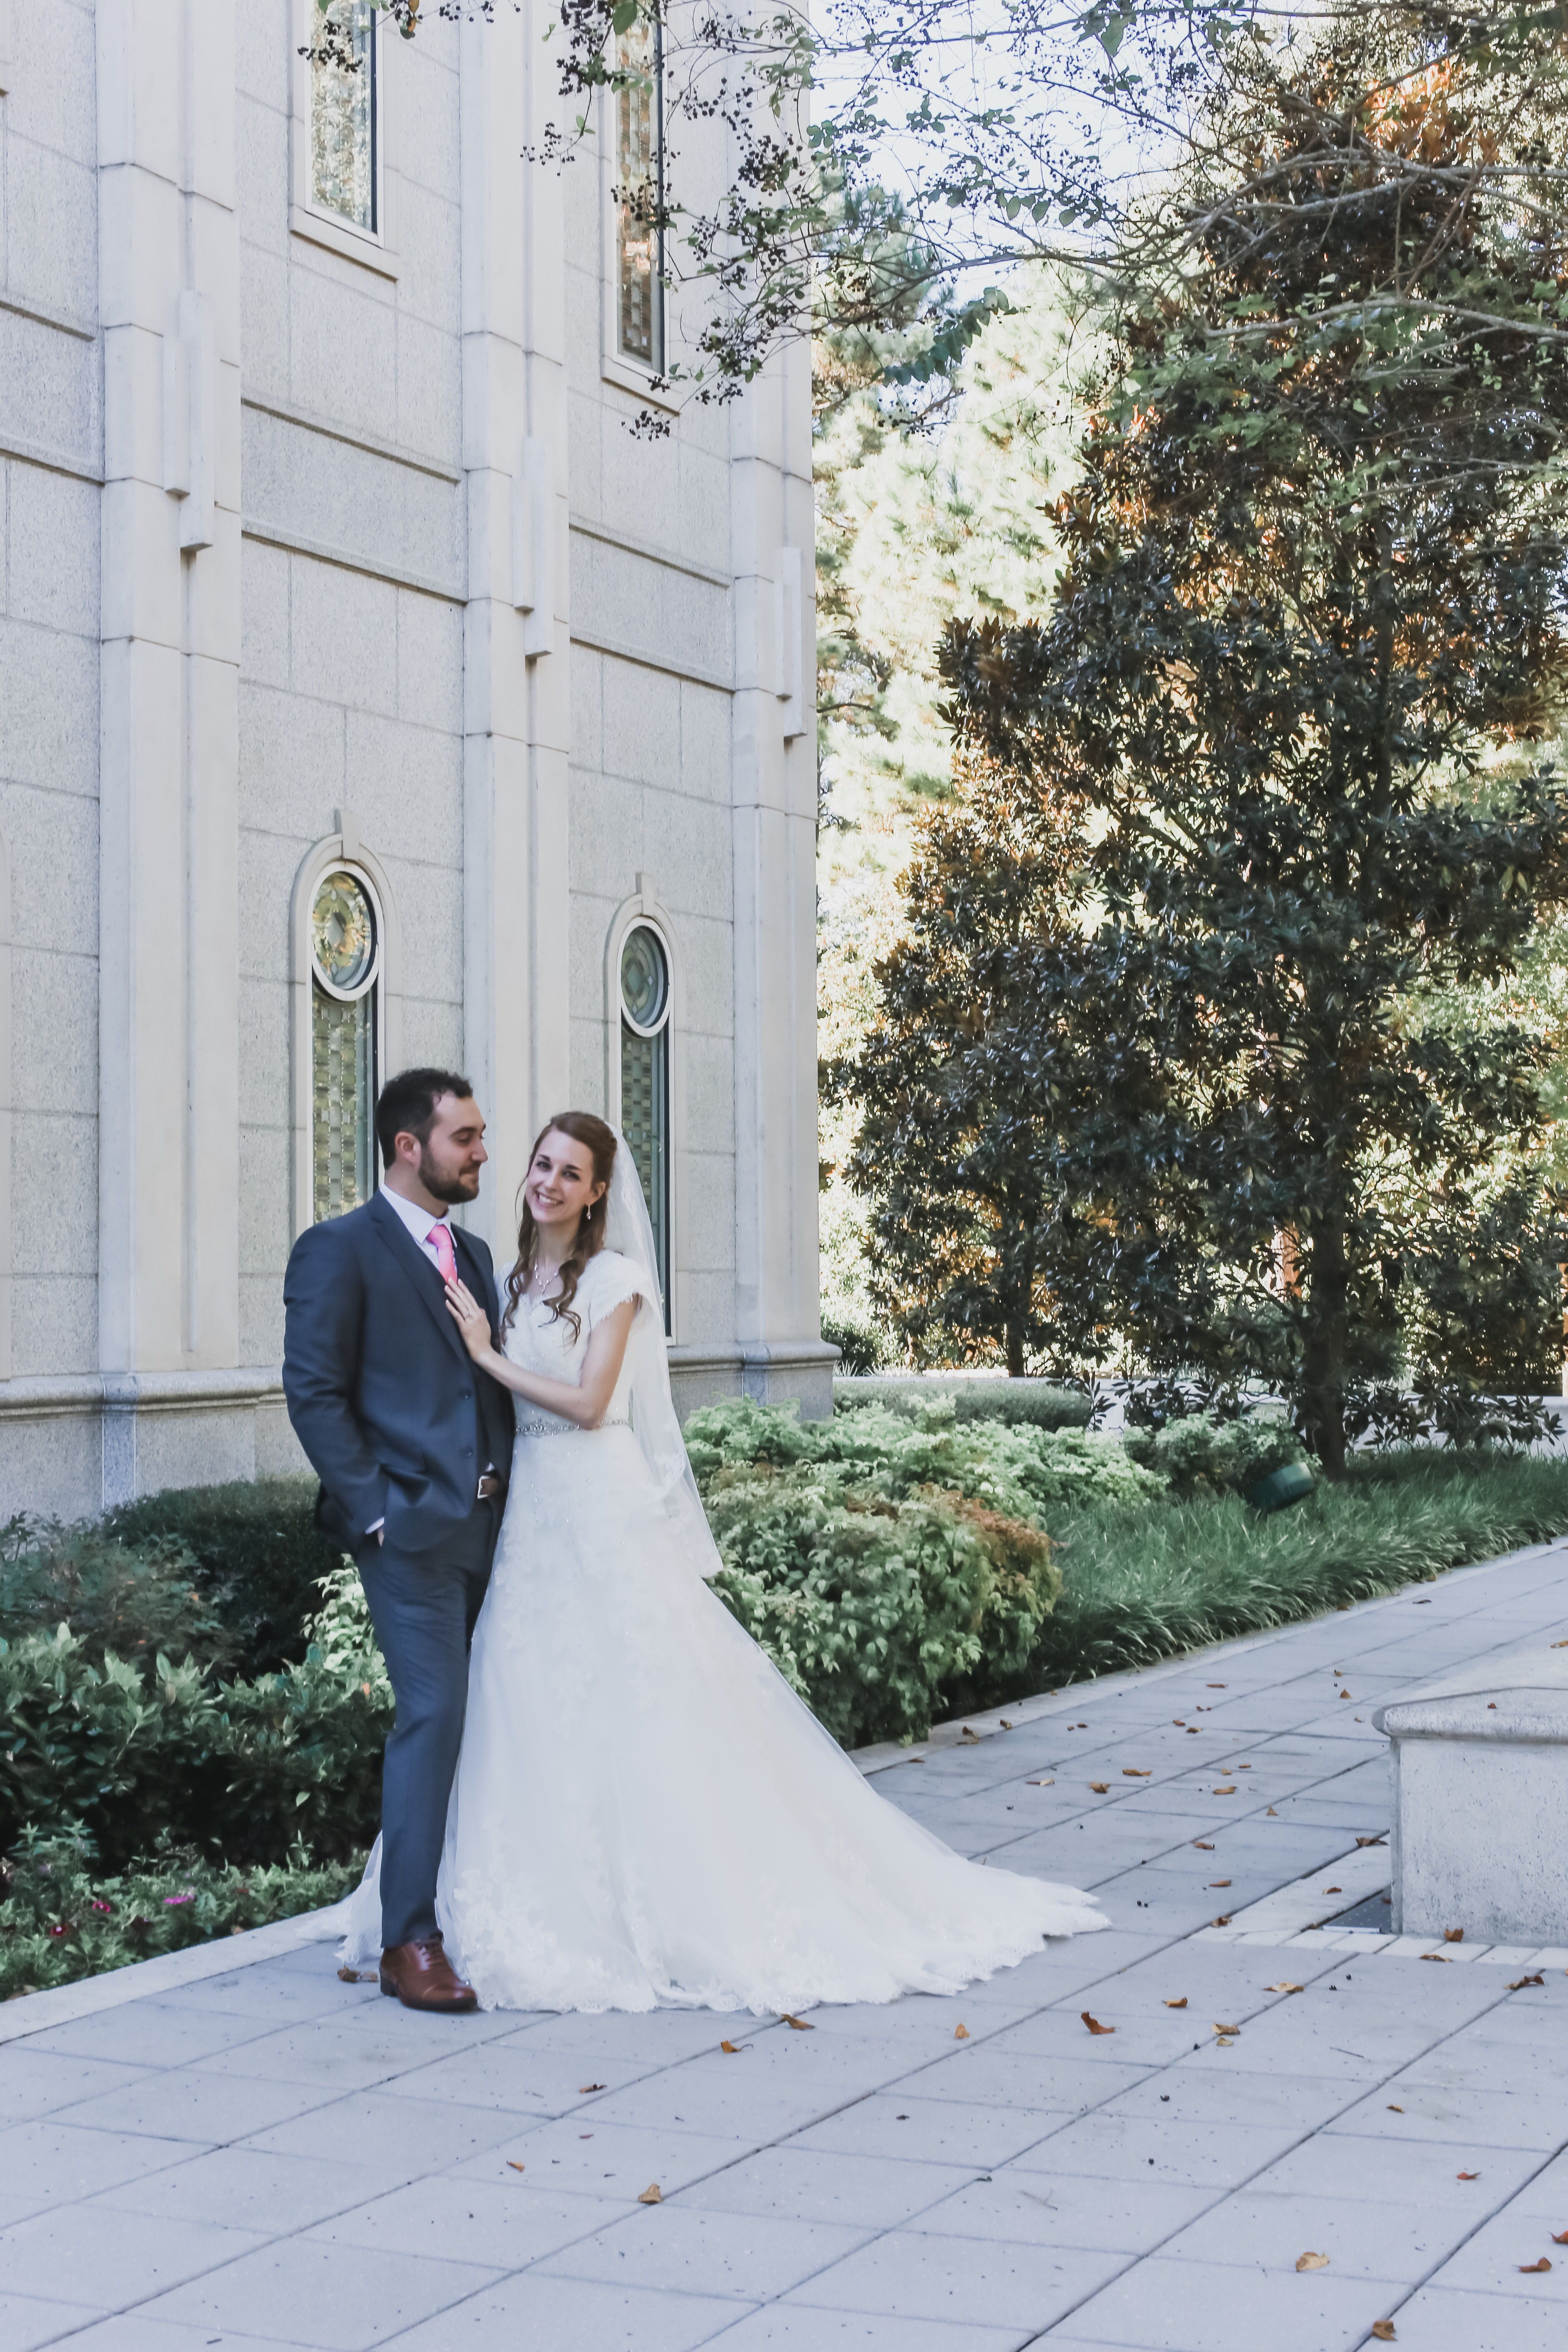 Fall Lds Wedding Lds Temples Wedding Temple Wedding Photography Lds Wedding